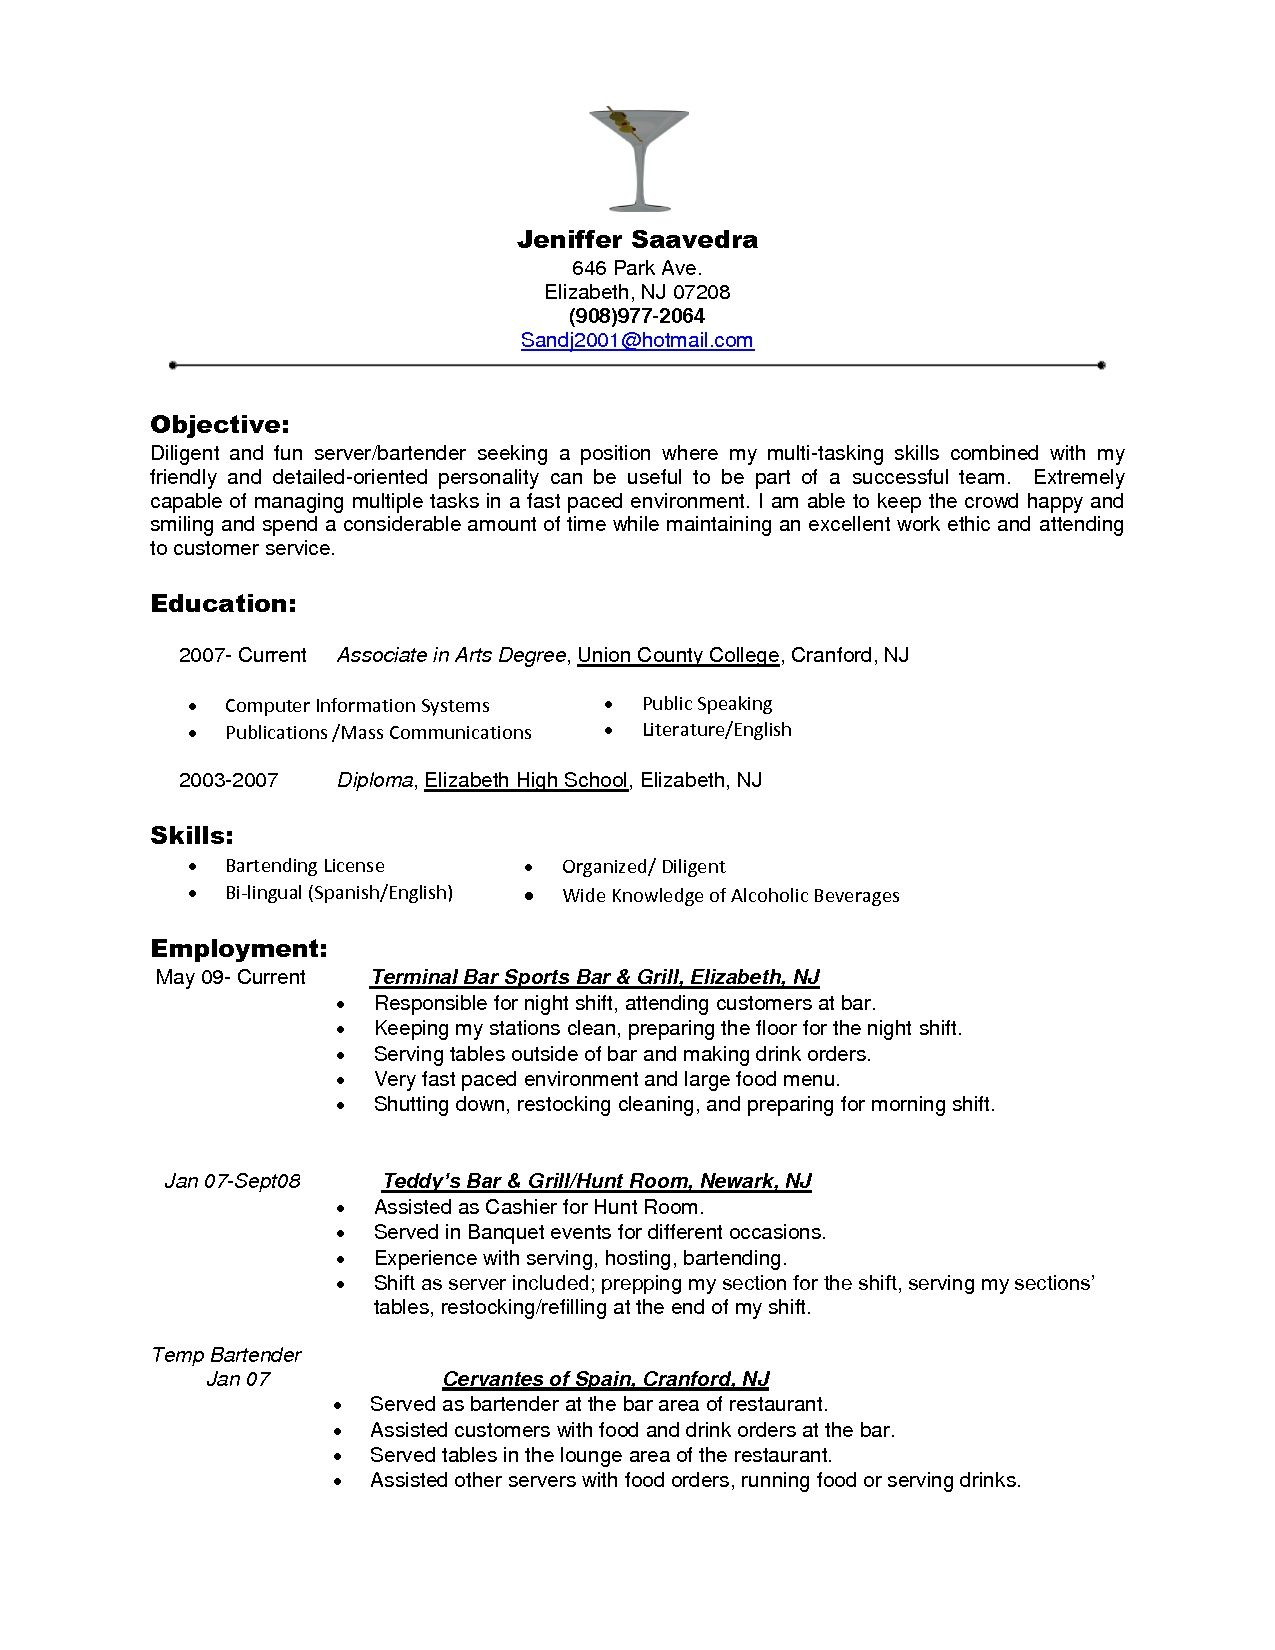 Objective Of A Resume Bartender Objectives Resume  Bartender Objectives Resume Will